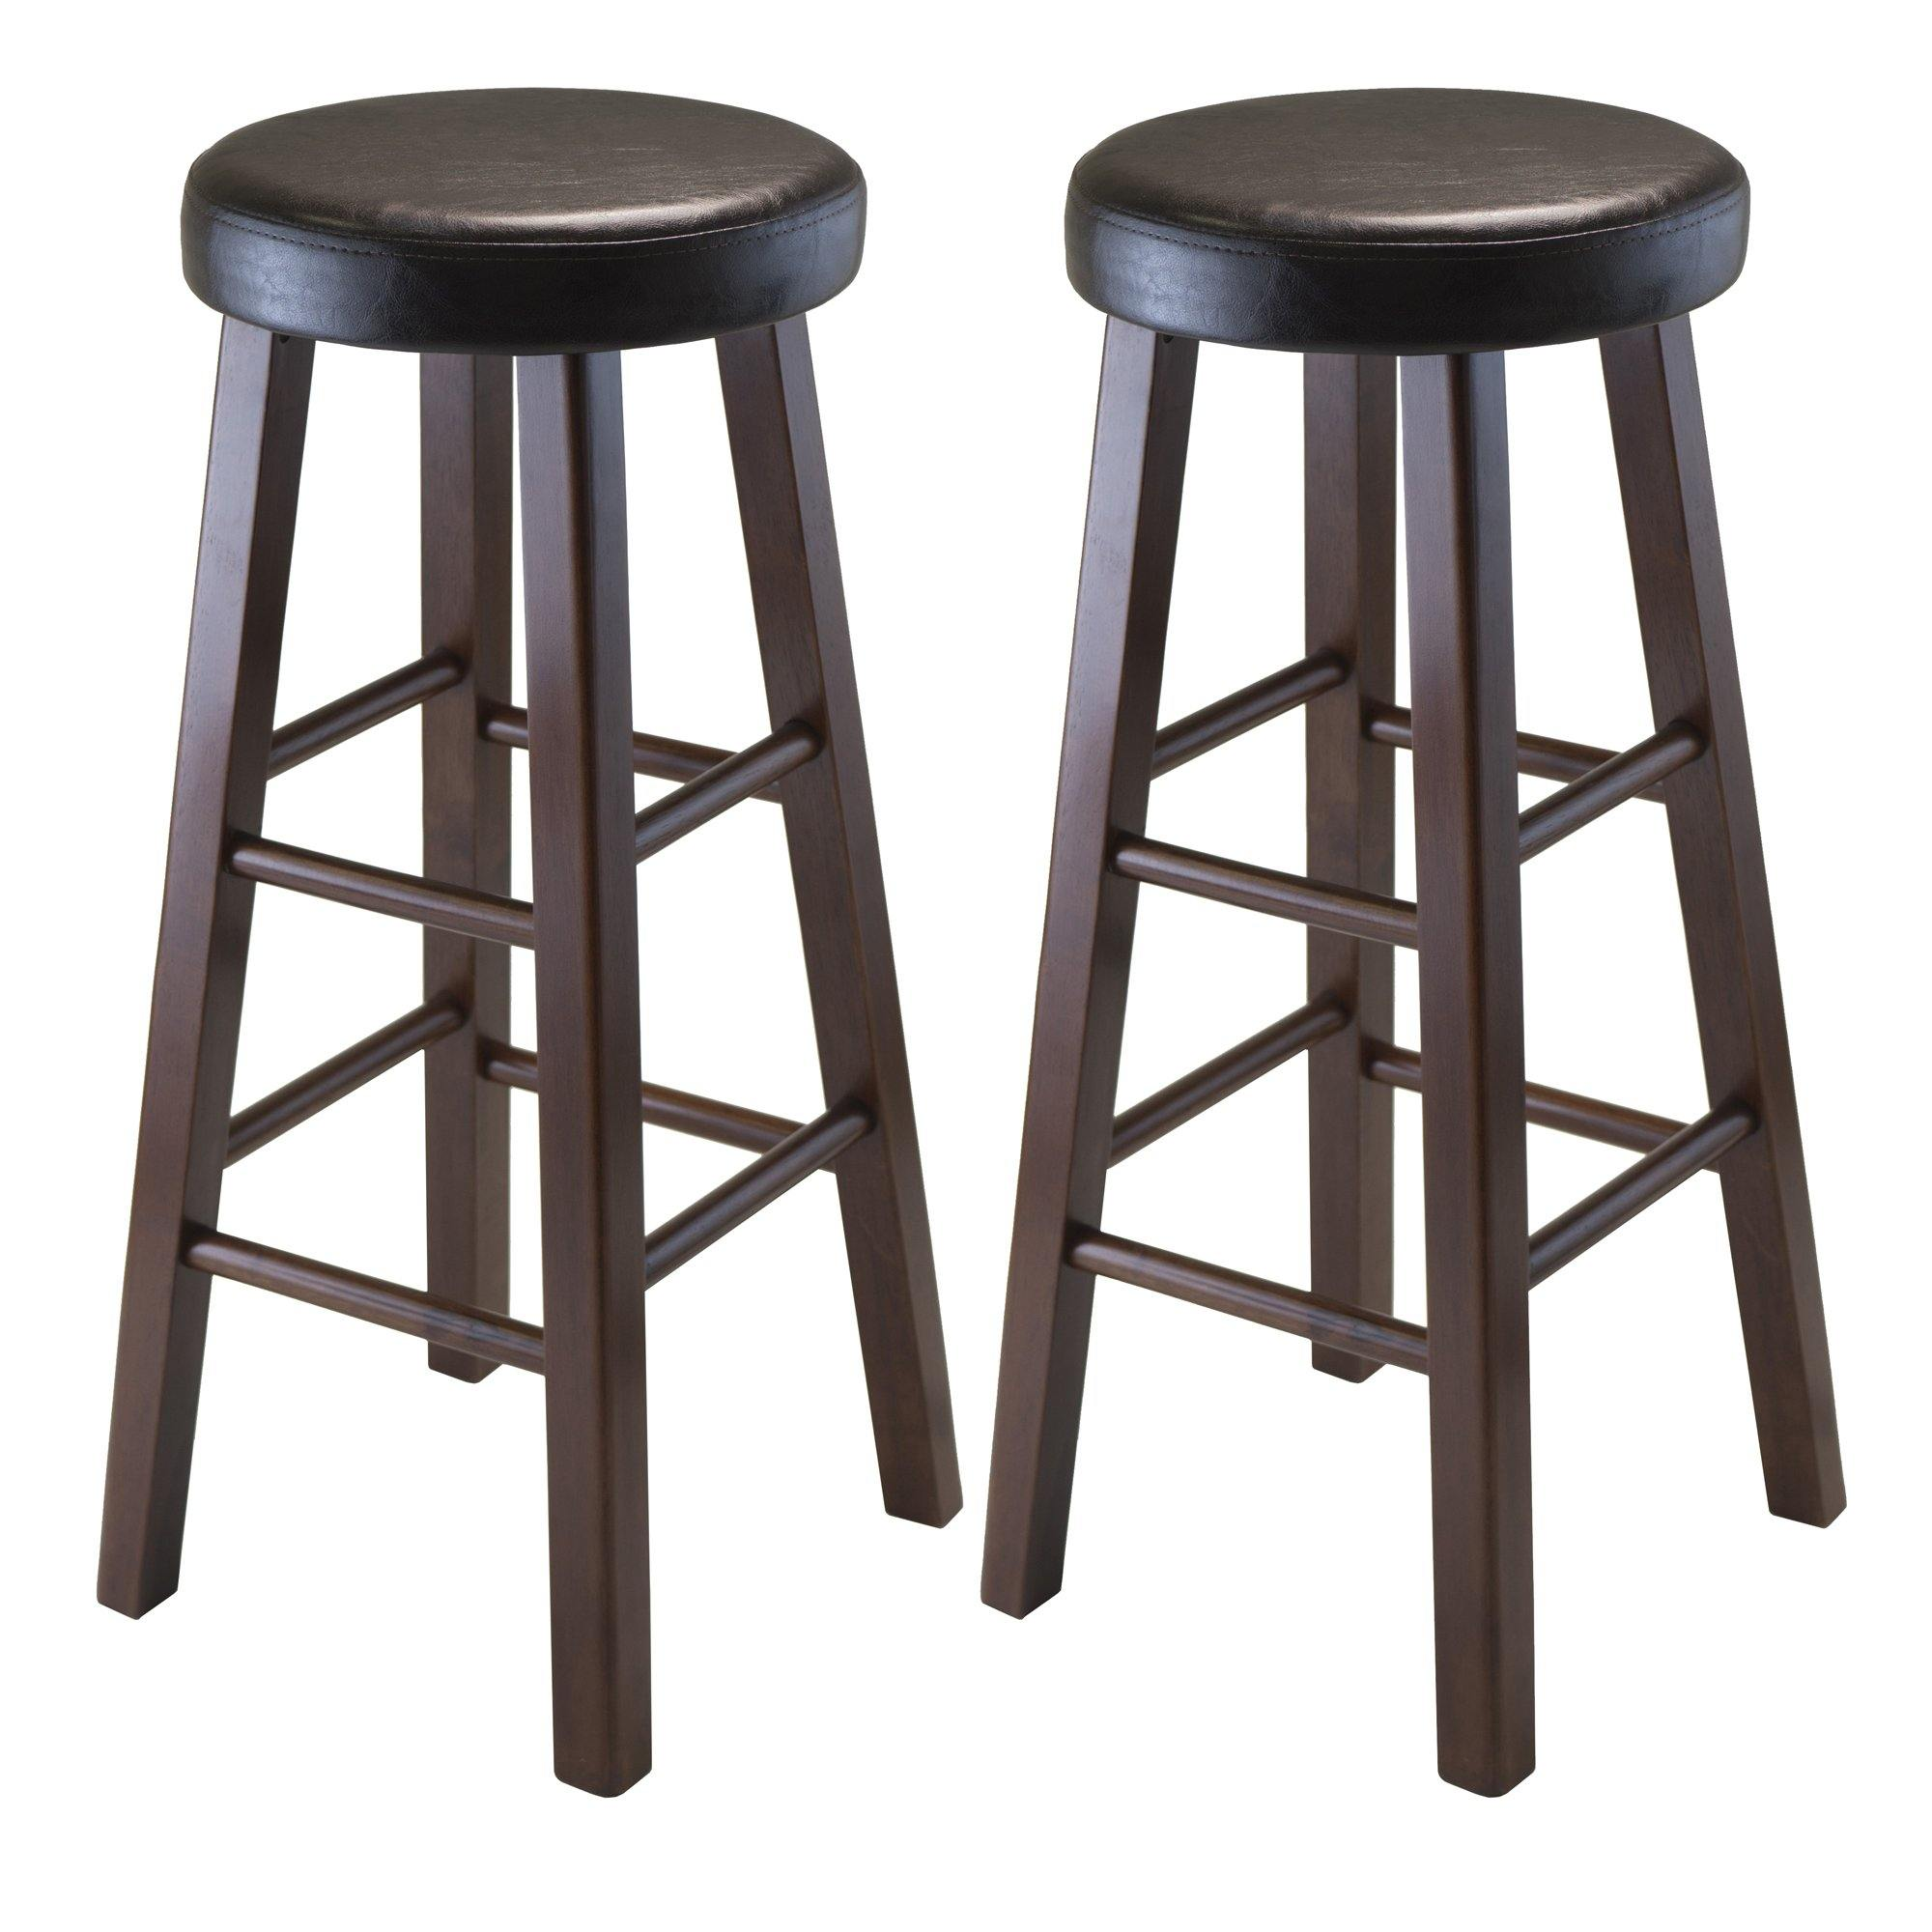 Marta Cushioned Bar Stools, 2-Pc Set, Espresso & Walnut - My USA Furniture